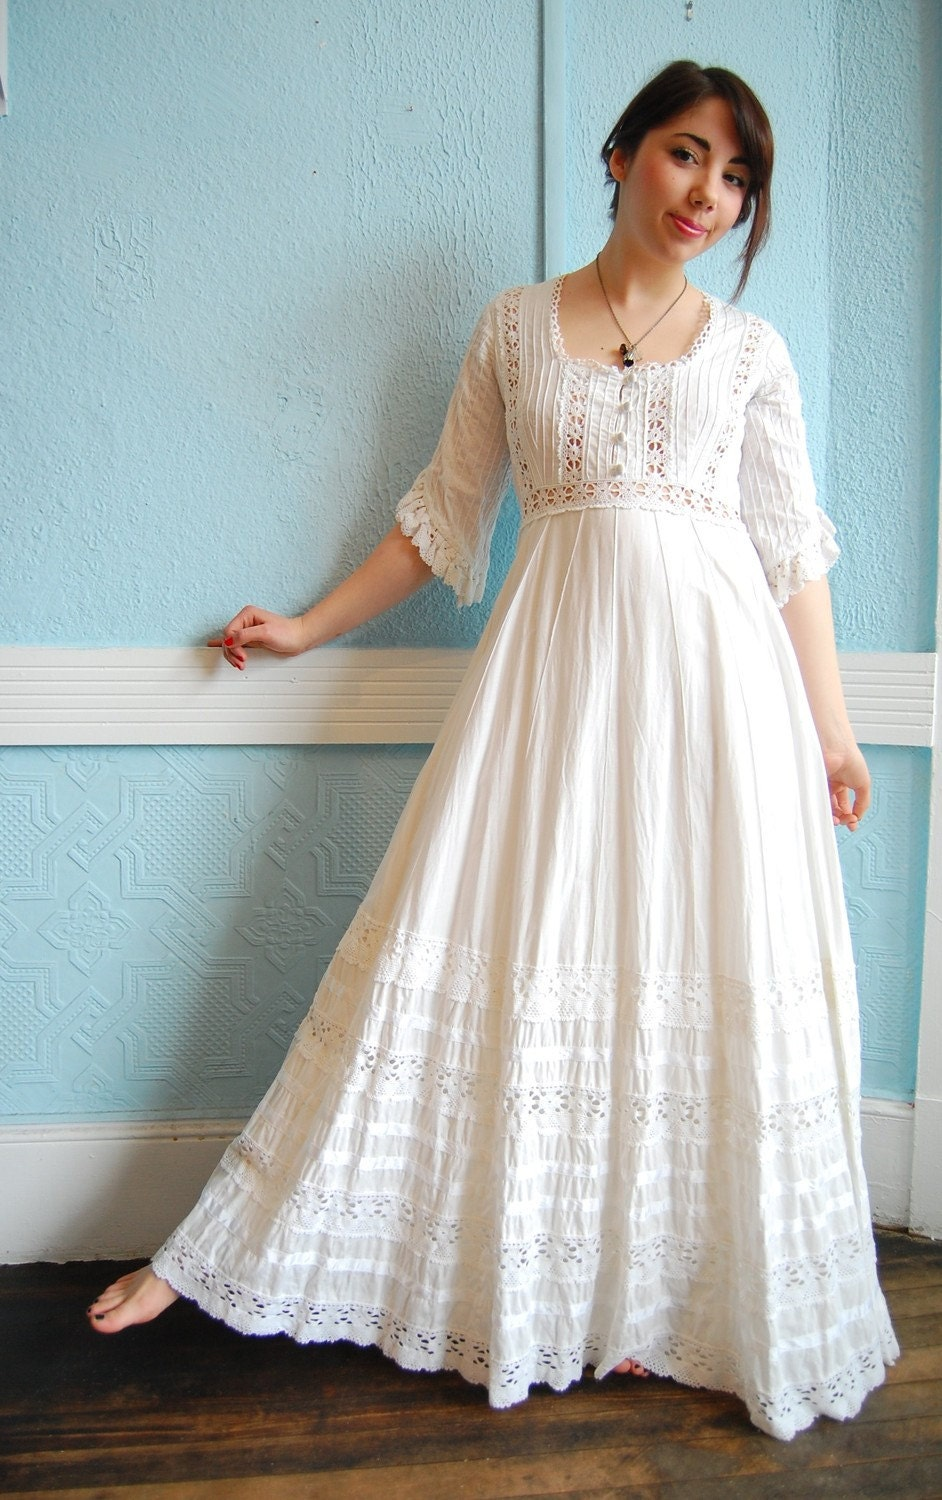 Traditional Mexican Wedding Dress   Dress images